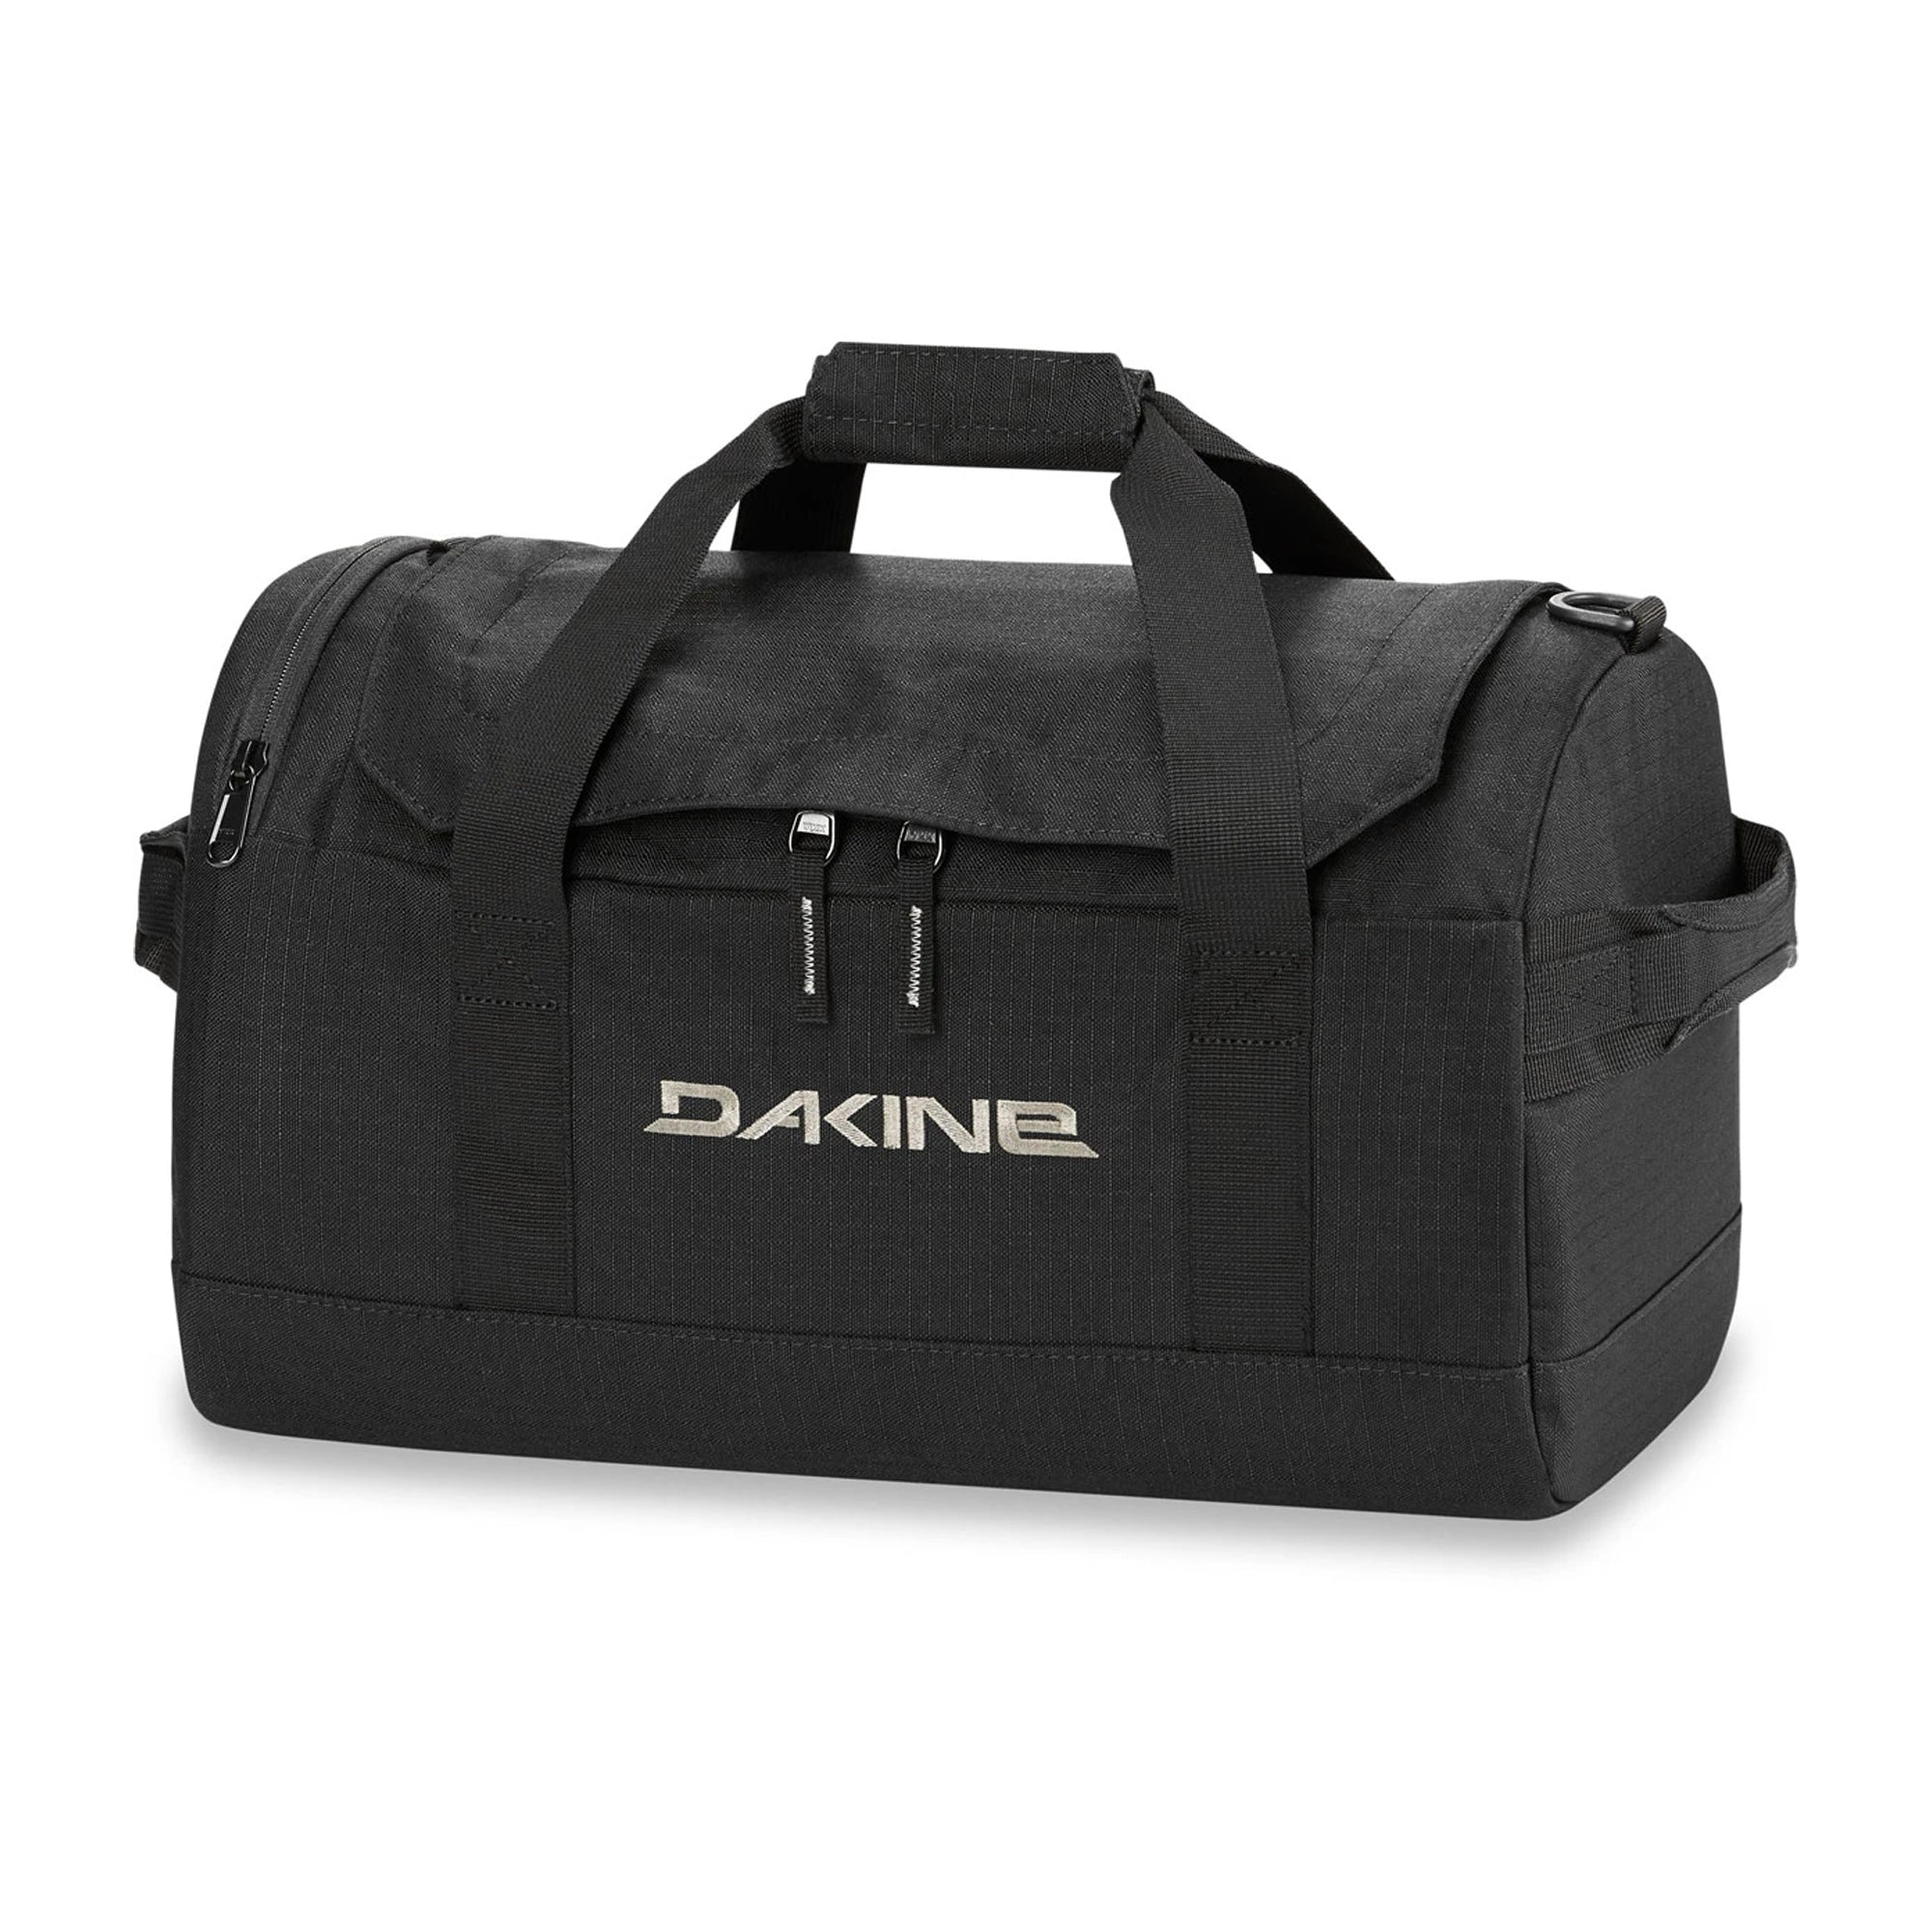 Dakine EQ Duffle 25L Bag